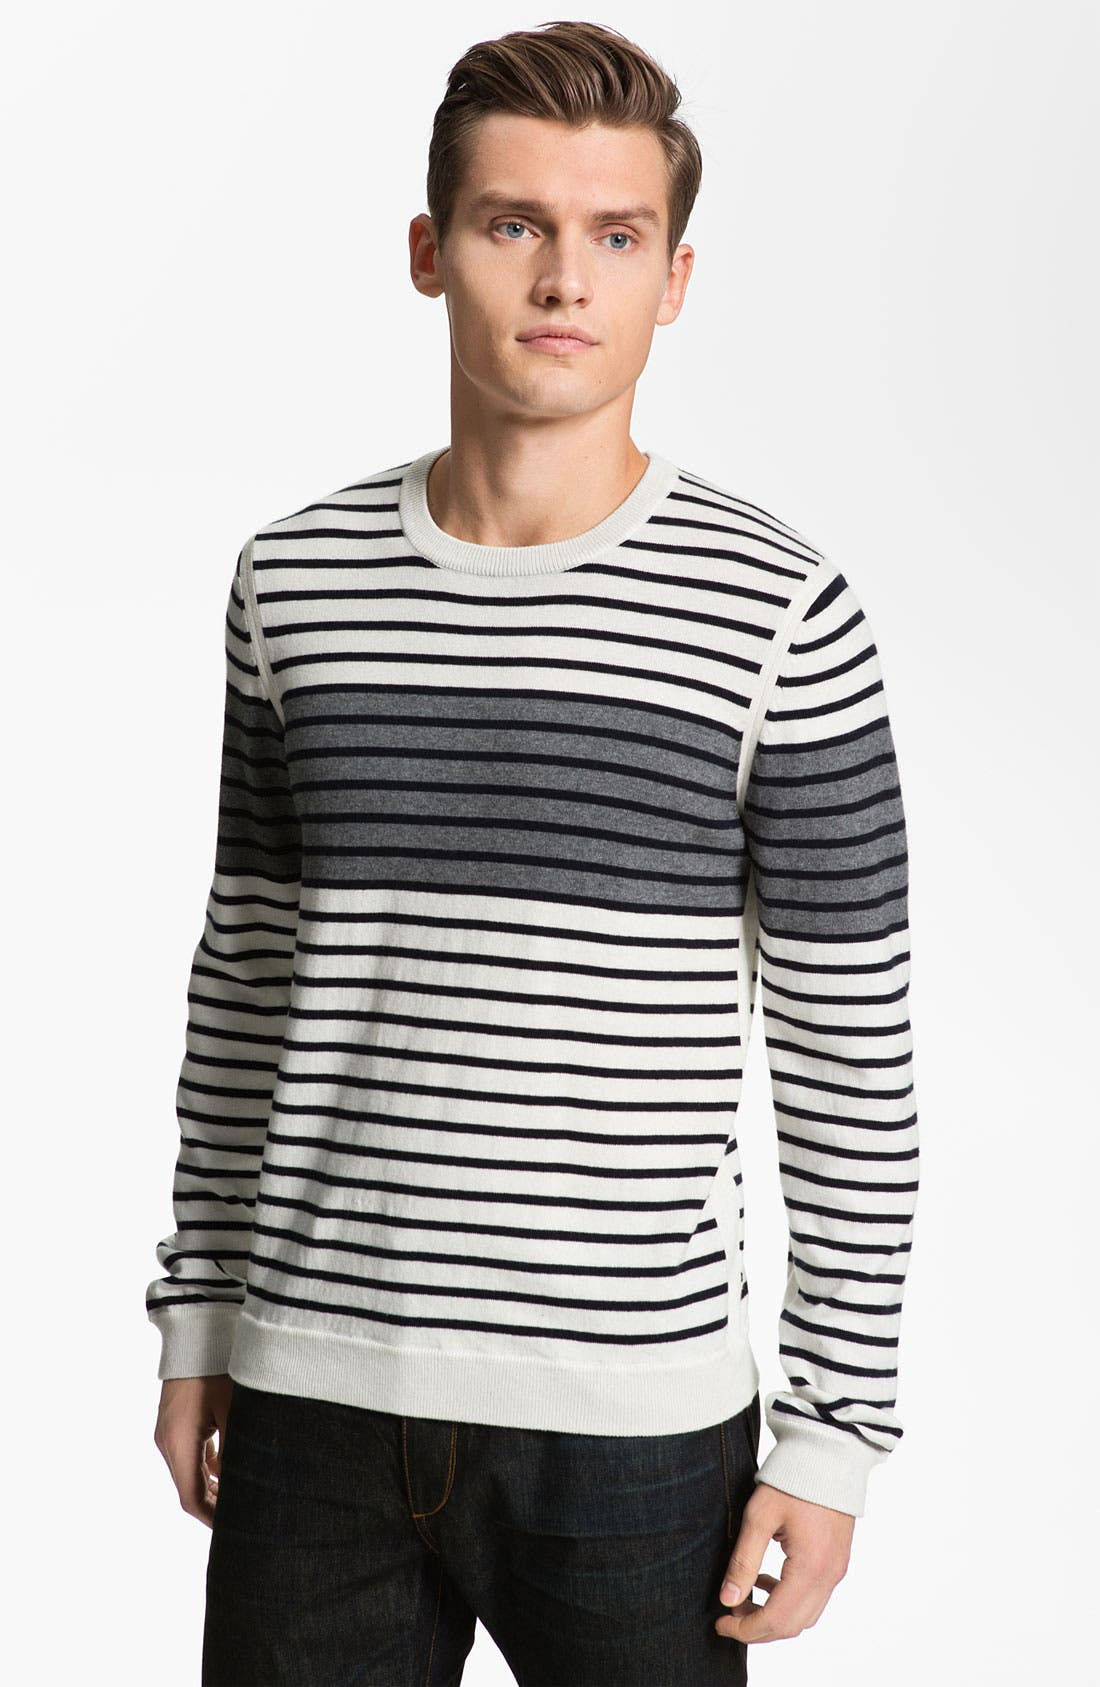 Alternate Image 1 Selected - rag & bone 'Patagonia' Stripe Crewneck Sweater